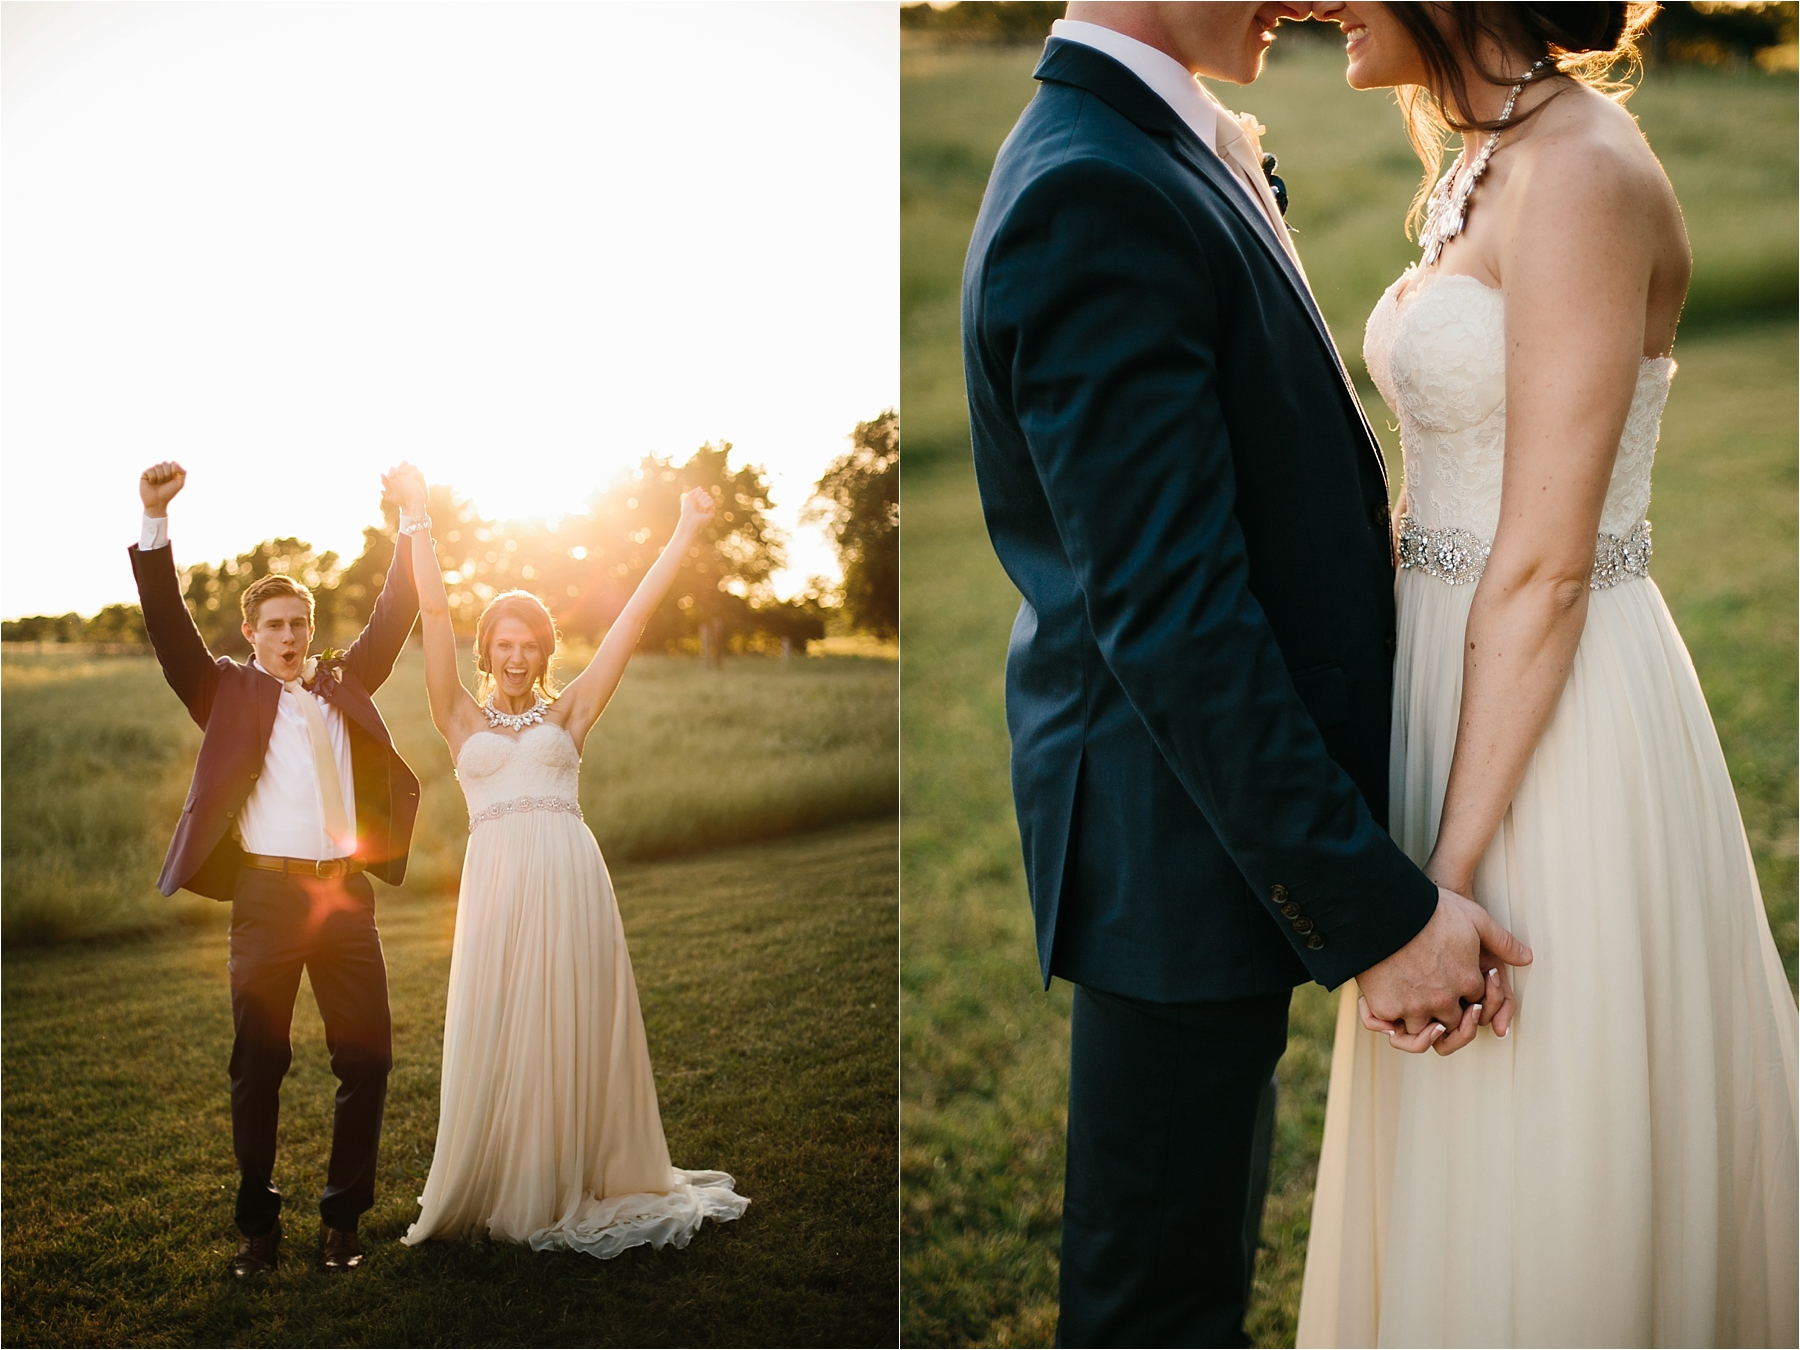 Outdoor Photography Wedding: An Elegant Outdoor Wedding At Willow